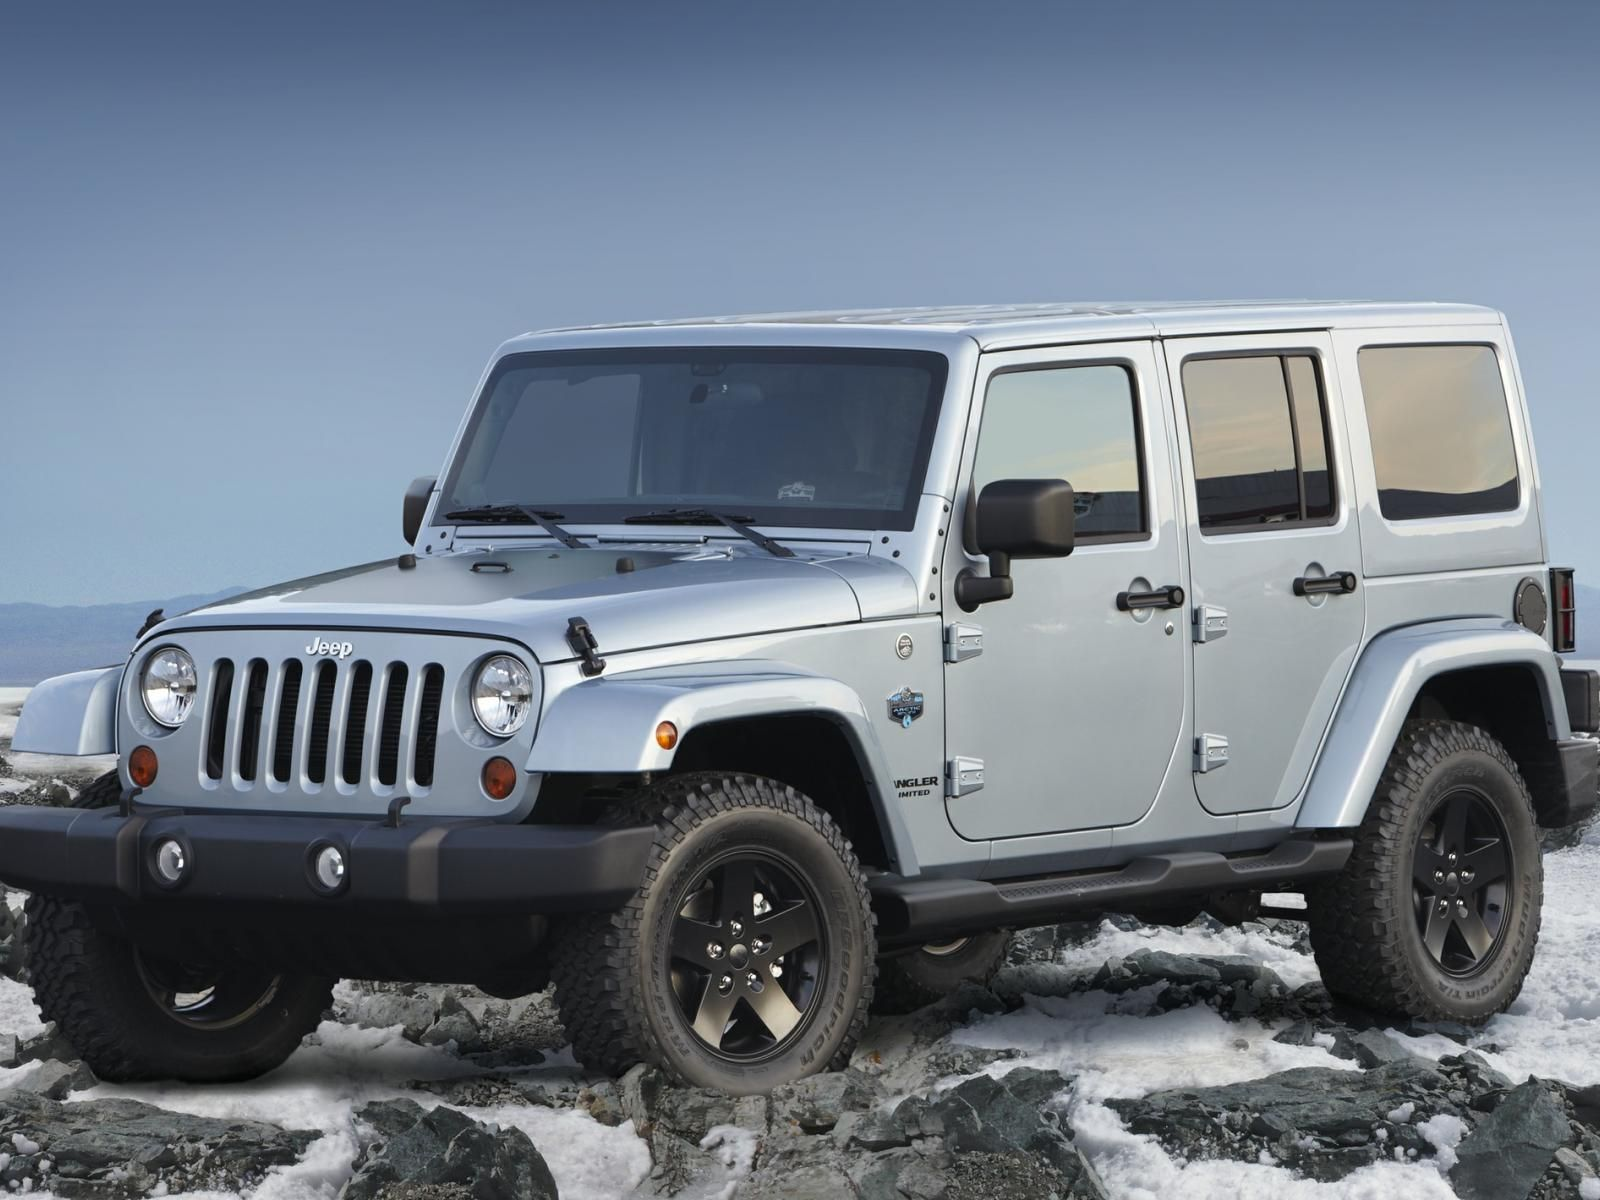 2012 Jeep Wrangler Arctic The Best Jeep Dealership In New Jersey